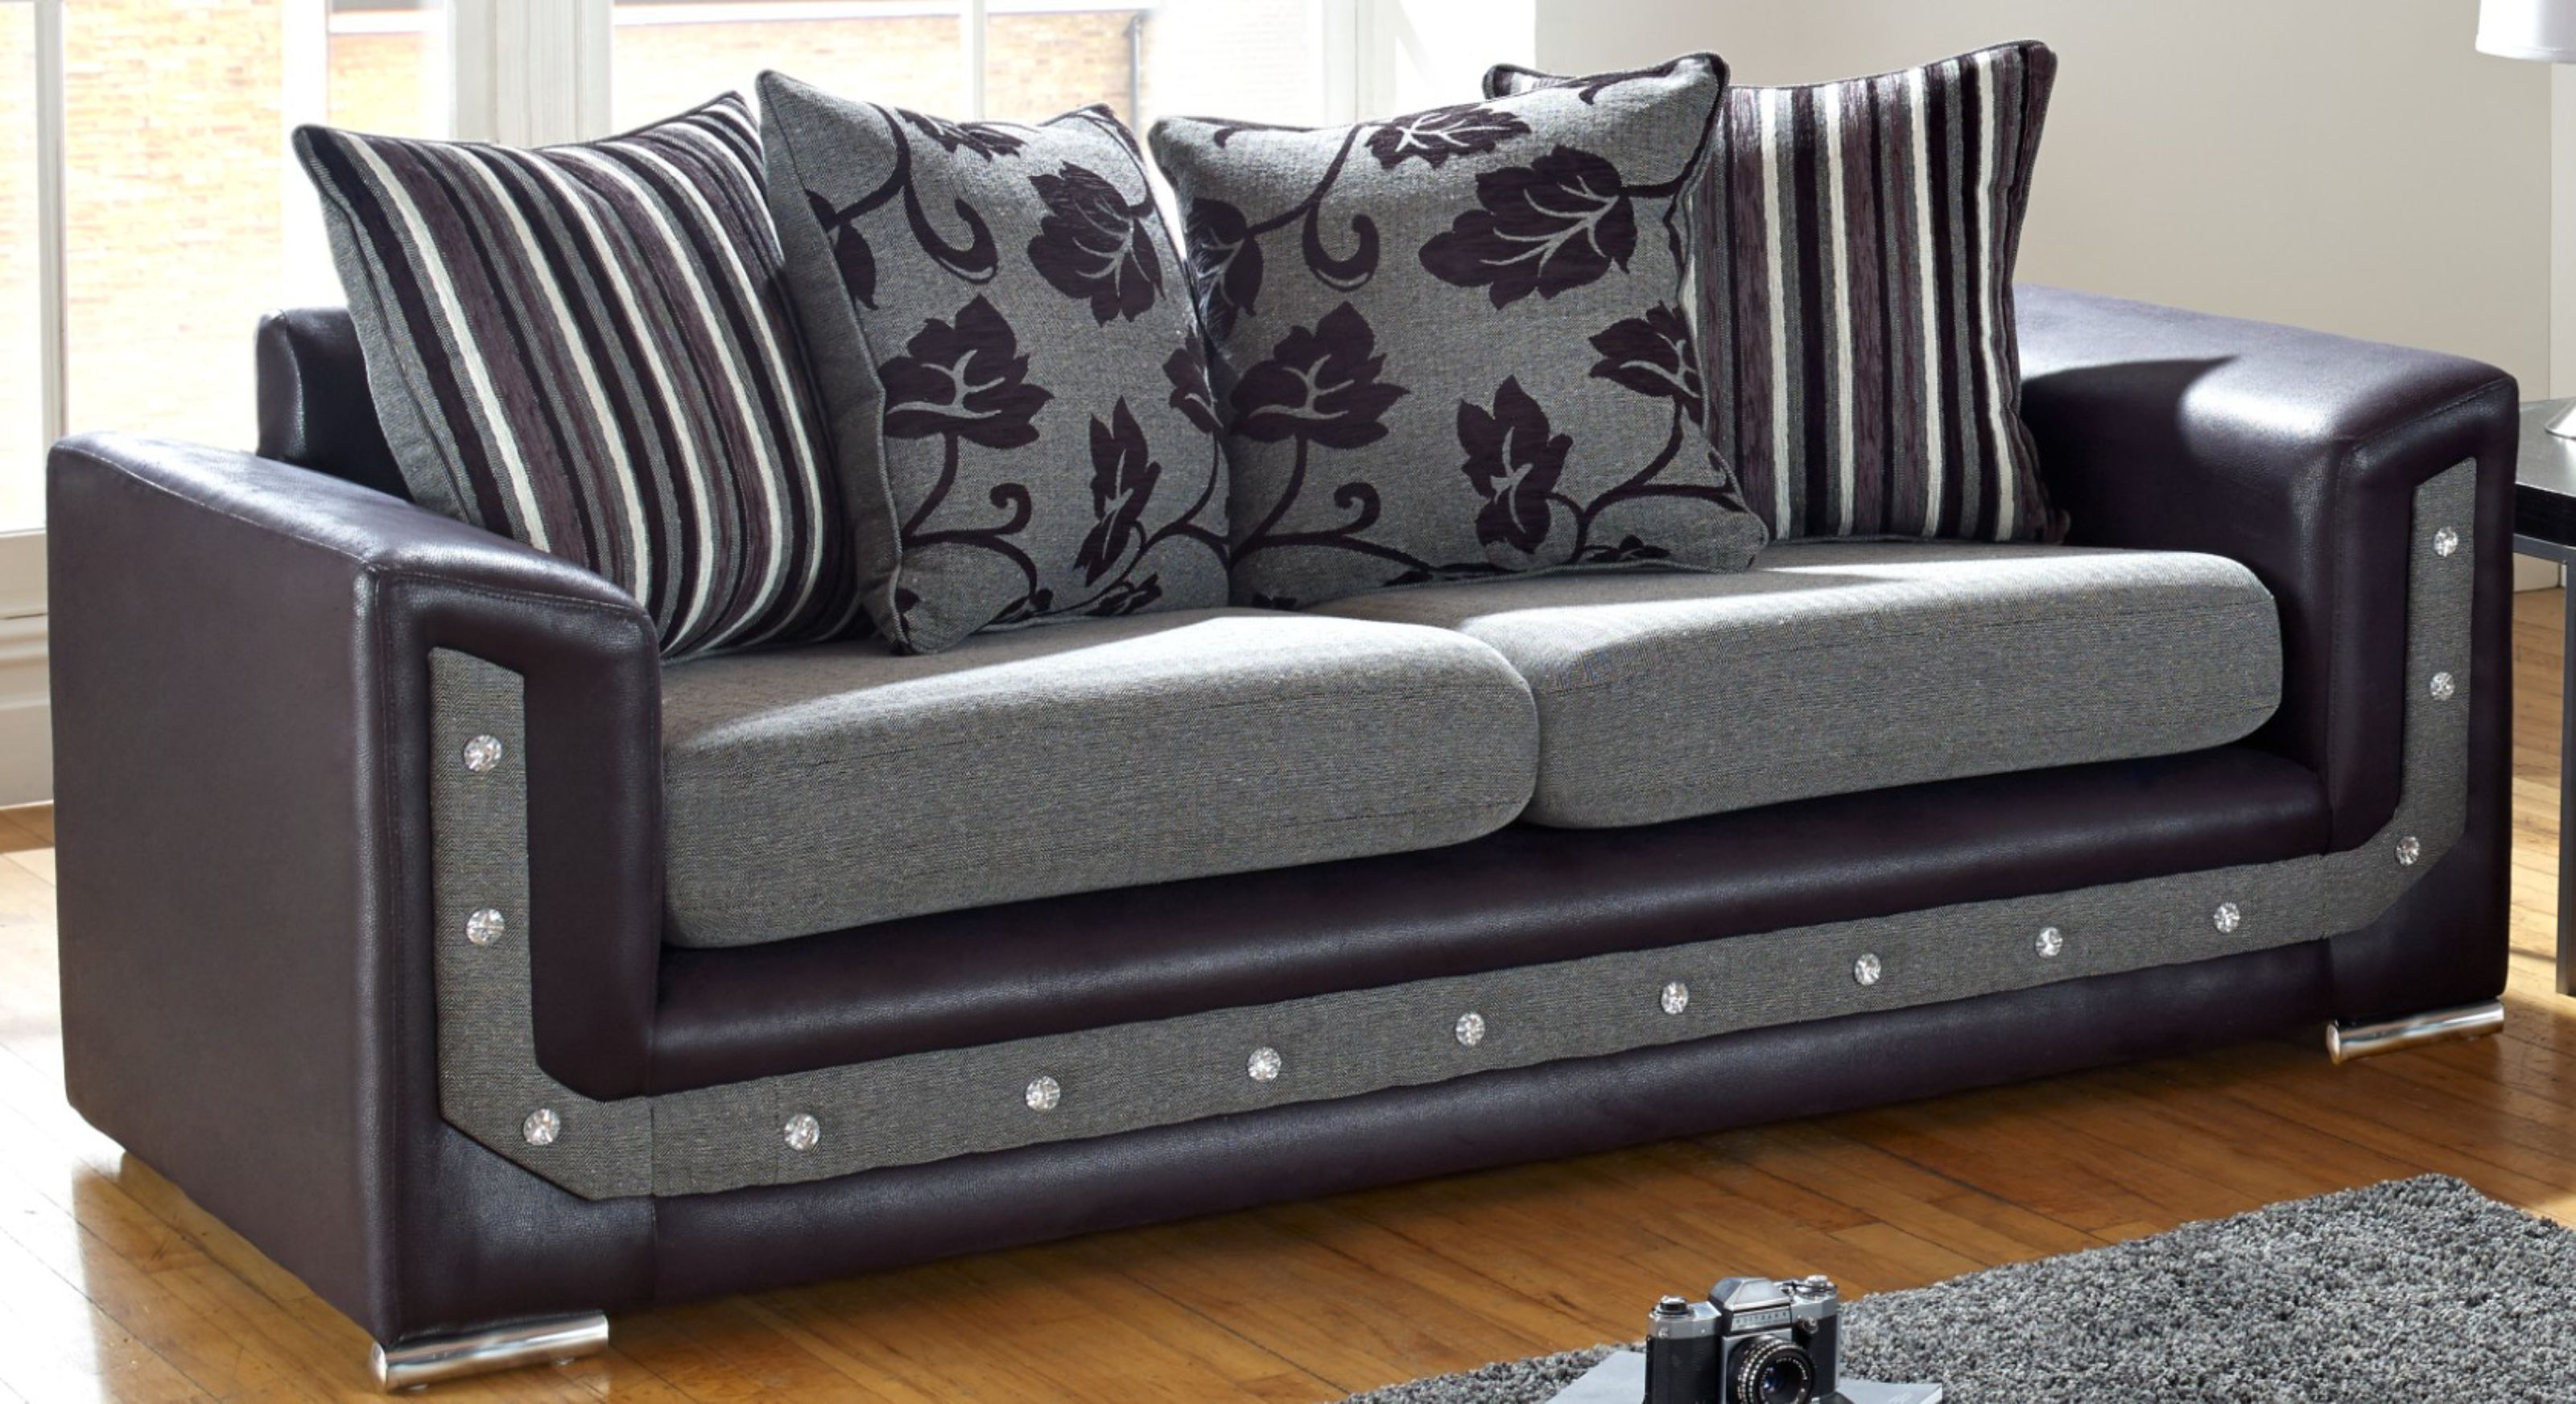 Strange Buy Uk Handcrafted British Furniture 3 Seat Fabric Sofa Made To Order Designersofas4U Pabps2019 Chair Design Images Pabps2019Com